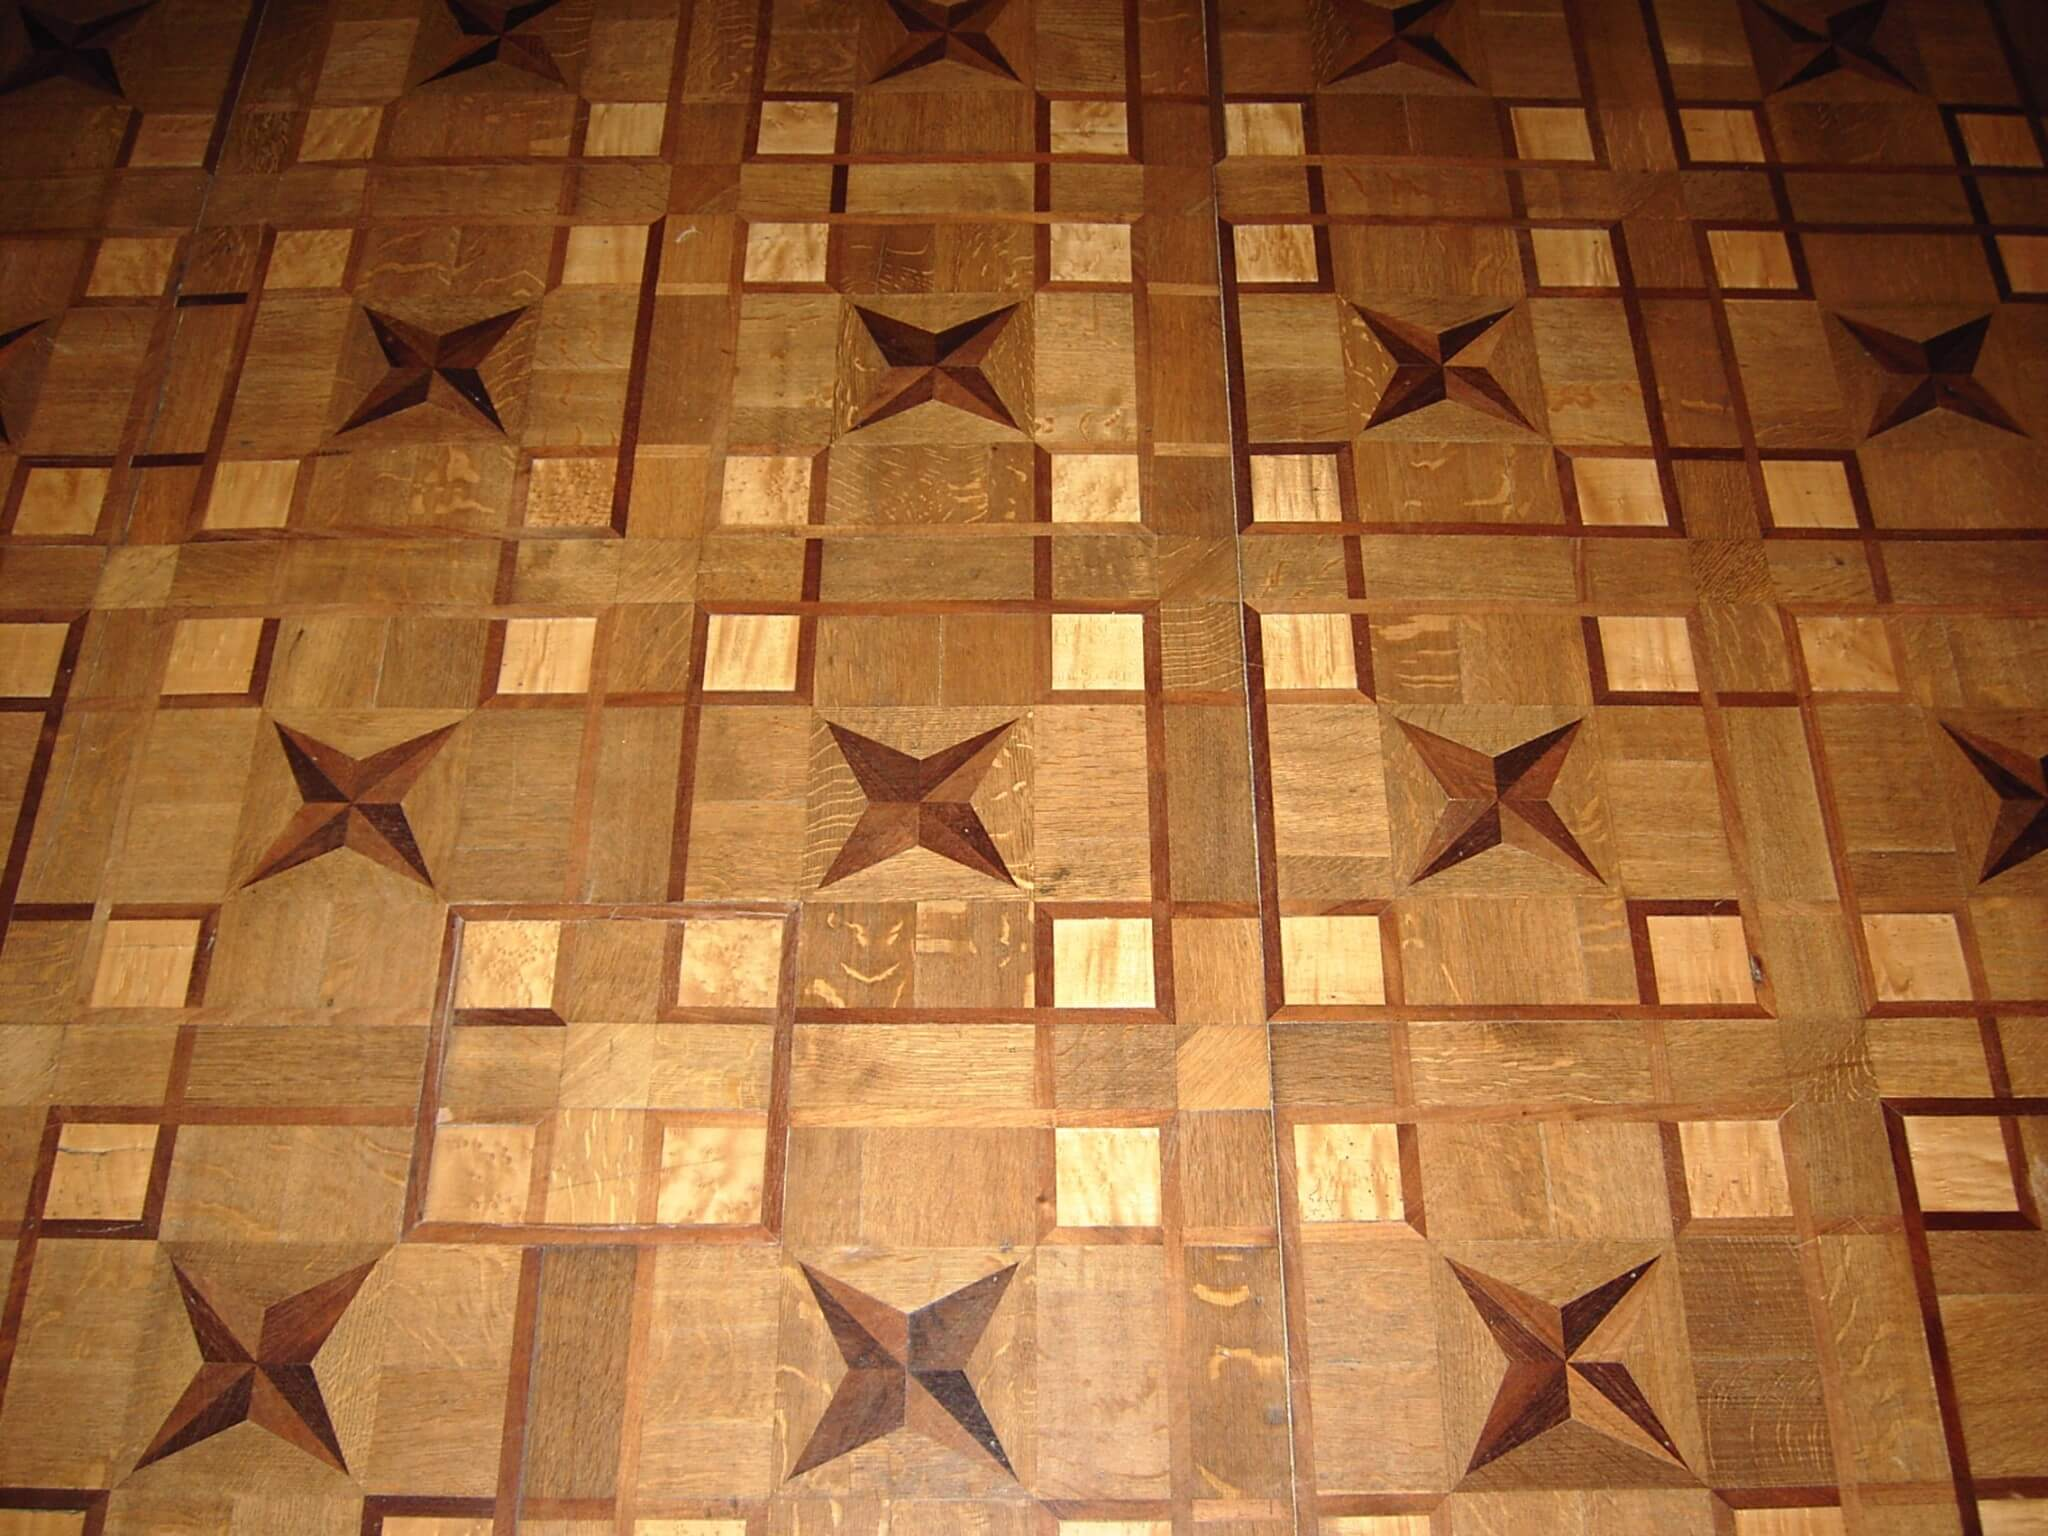 Parquet Flooring. Description, Review, Choosing Advice. Decorative parquet with the pattern